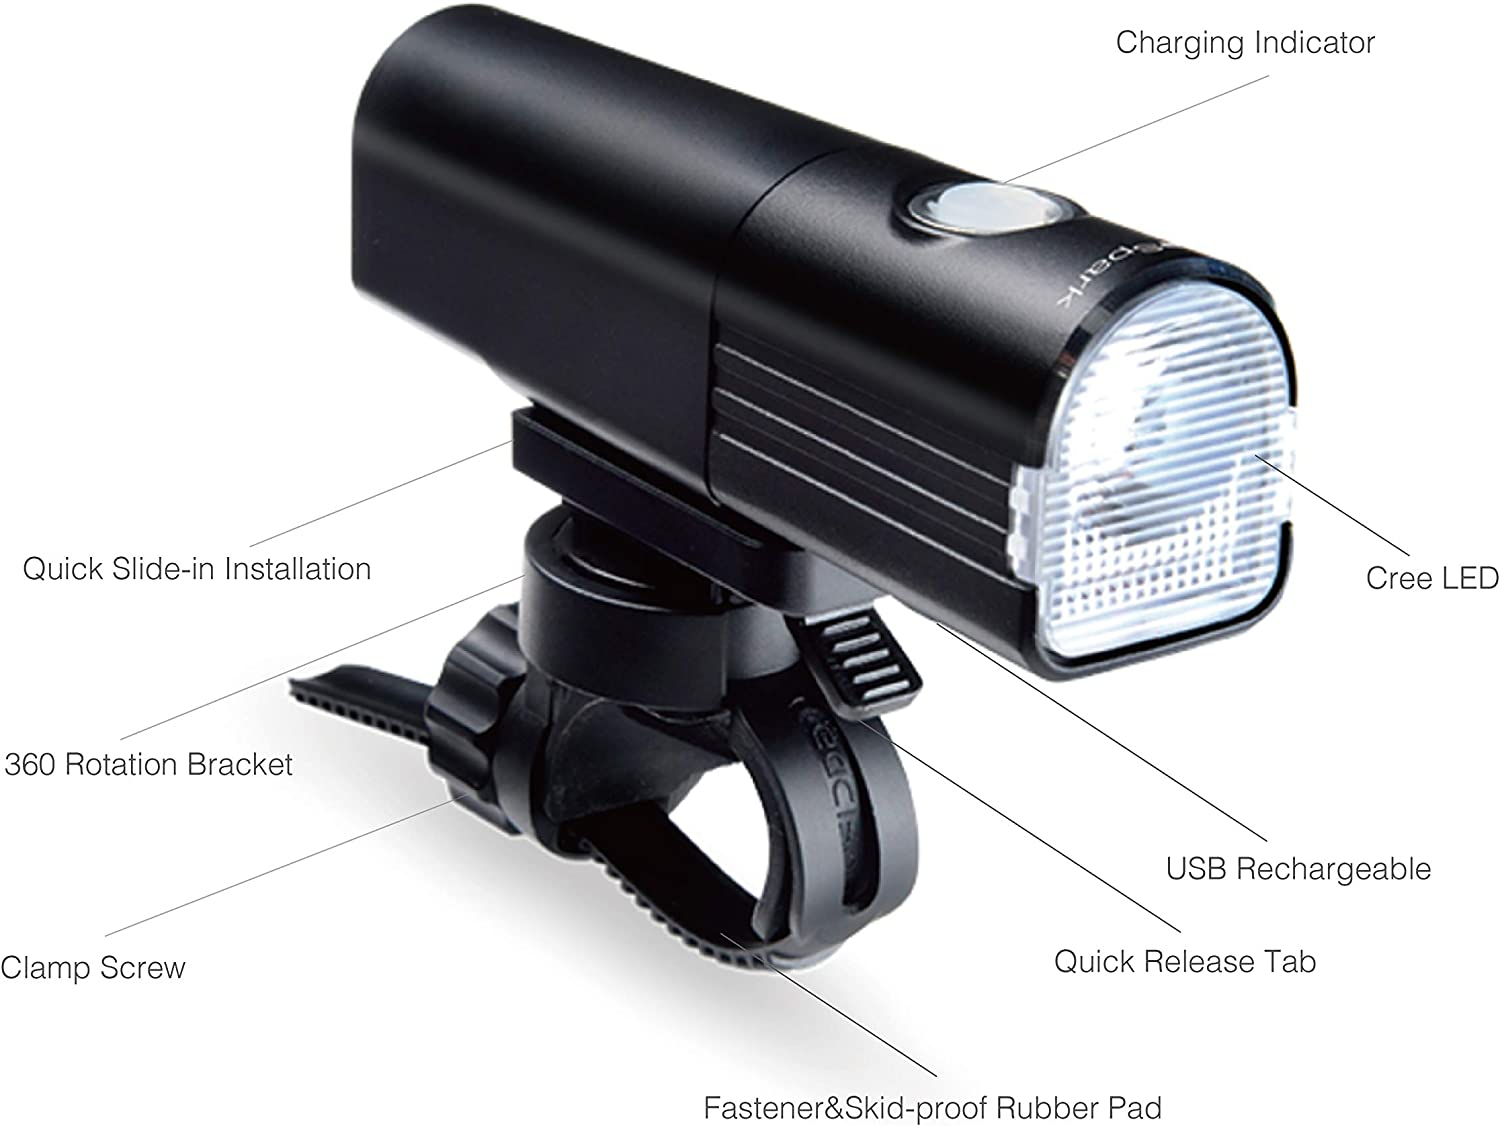 BikeSpark Ultra Bright Front Light F3-800 lm Super Bright LED Bike Headlight – USB Rechargeable LG 3350mAh – Water Resistant IPX6 – Fast Installation and Light Projection Angle Adjustable